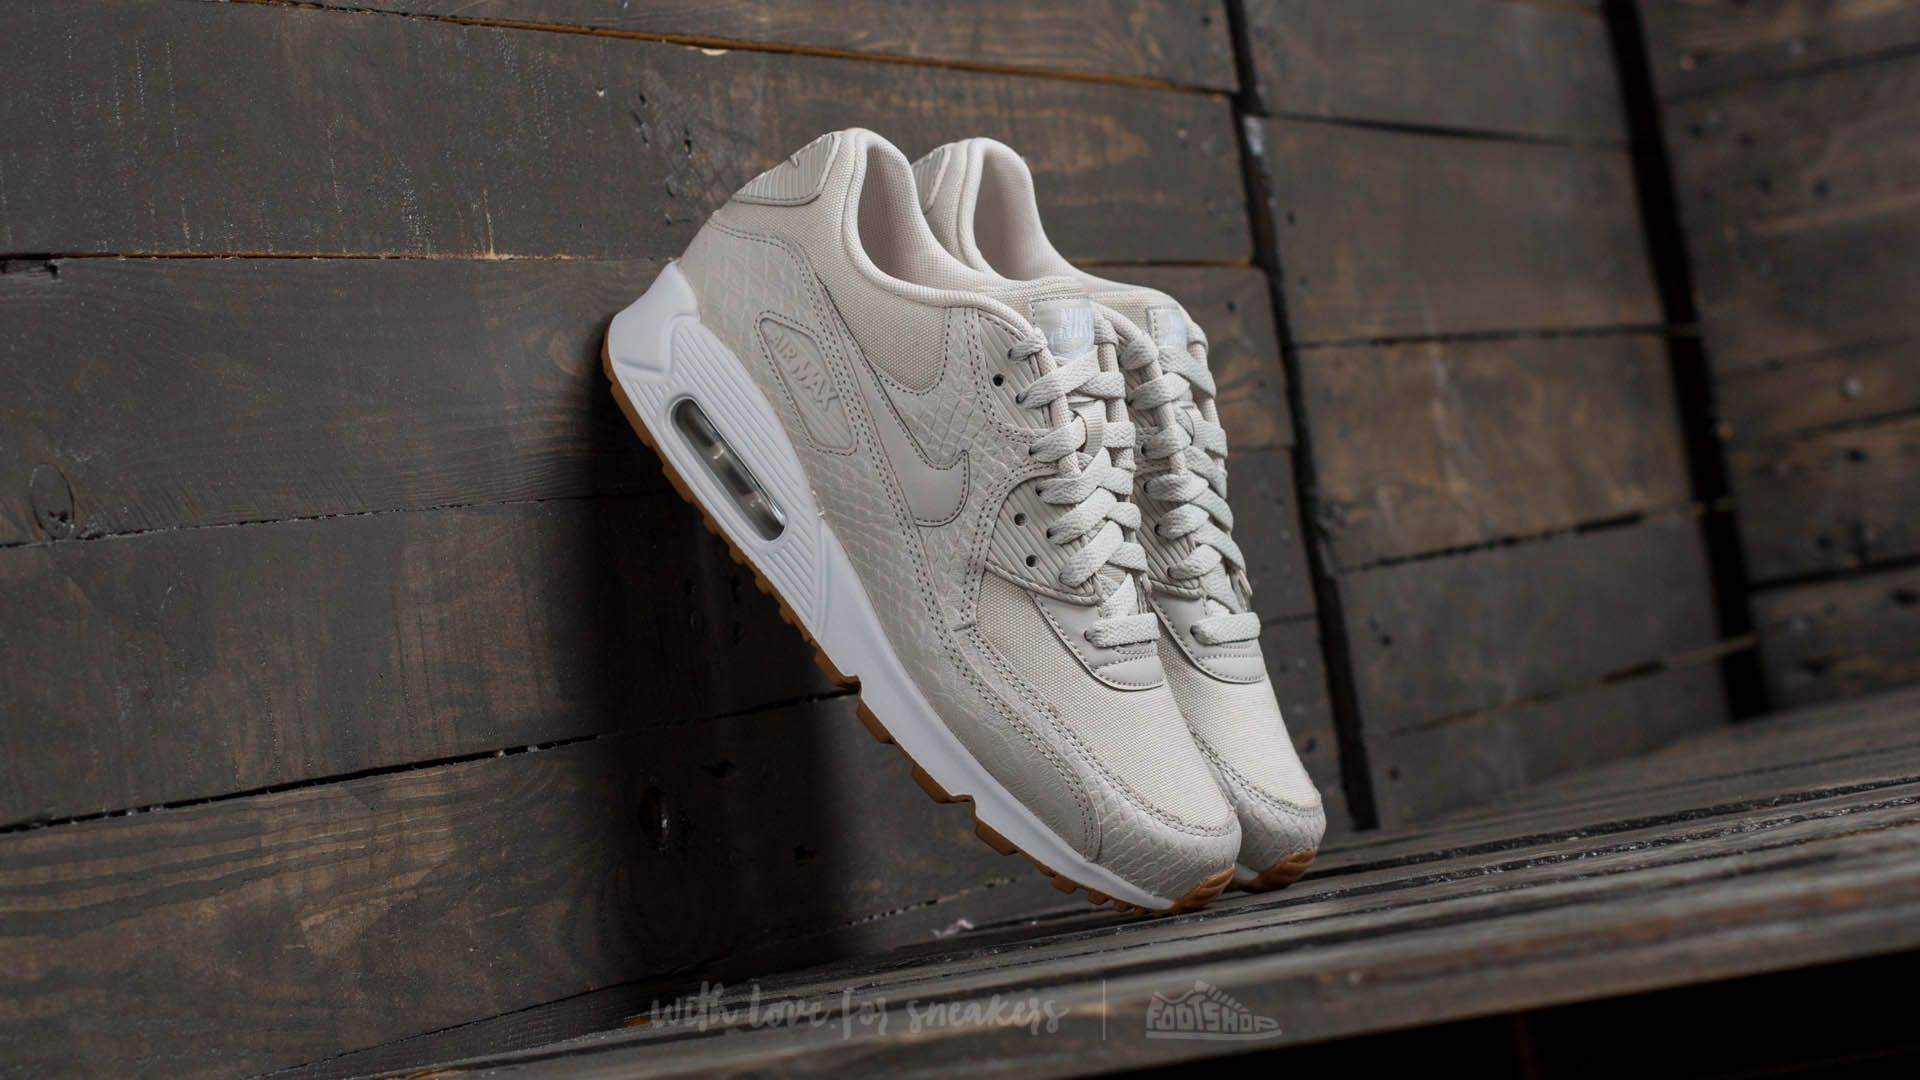 Nike Wmns Air Max 90 Premium Light Bone/ Light Bone